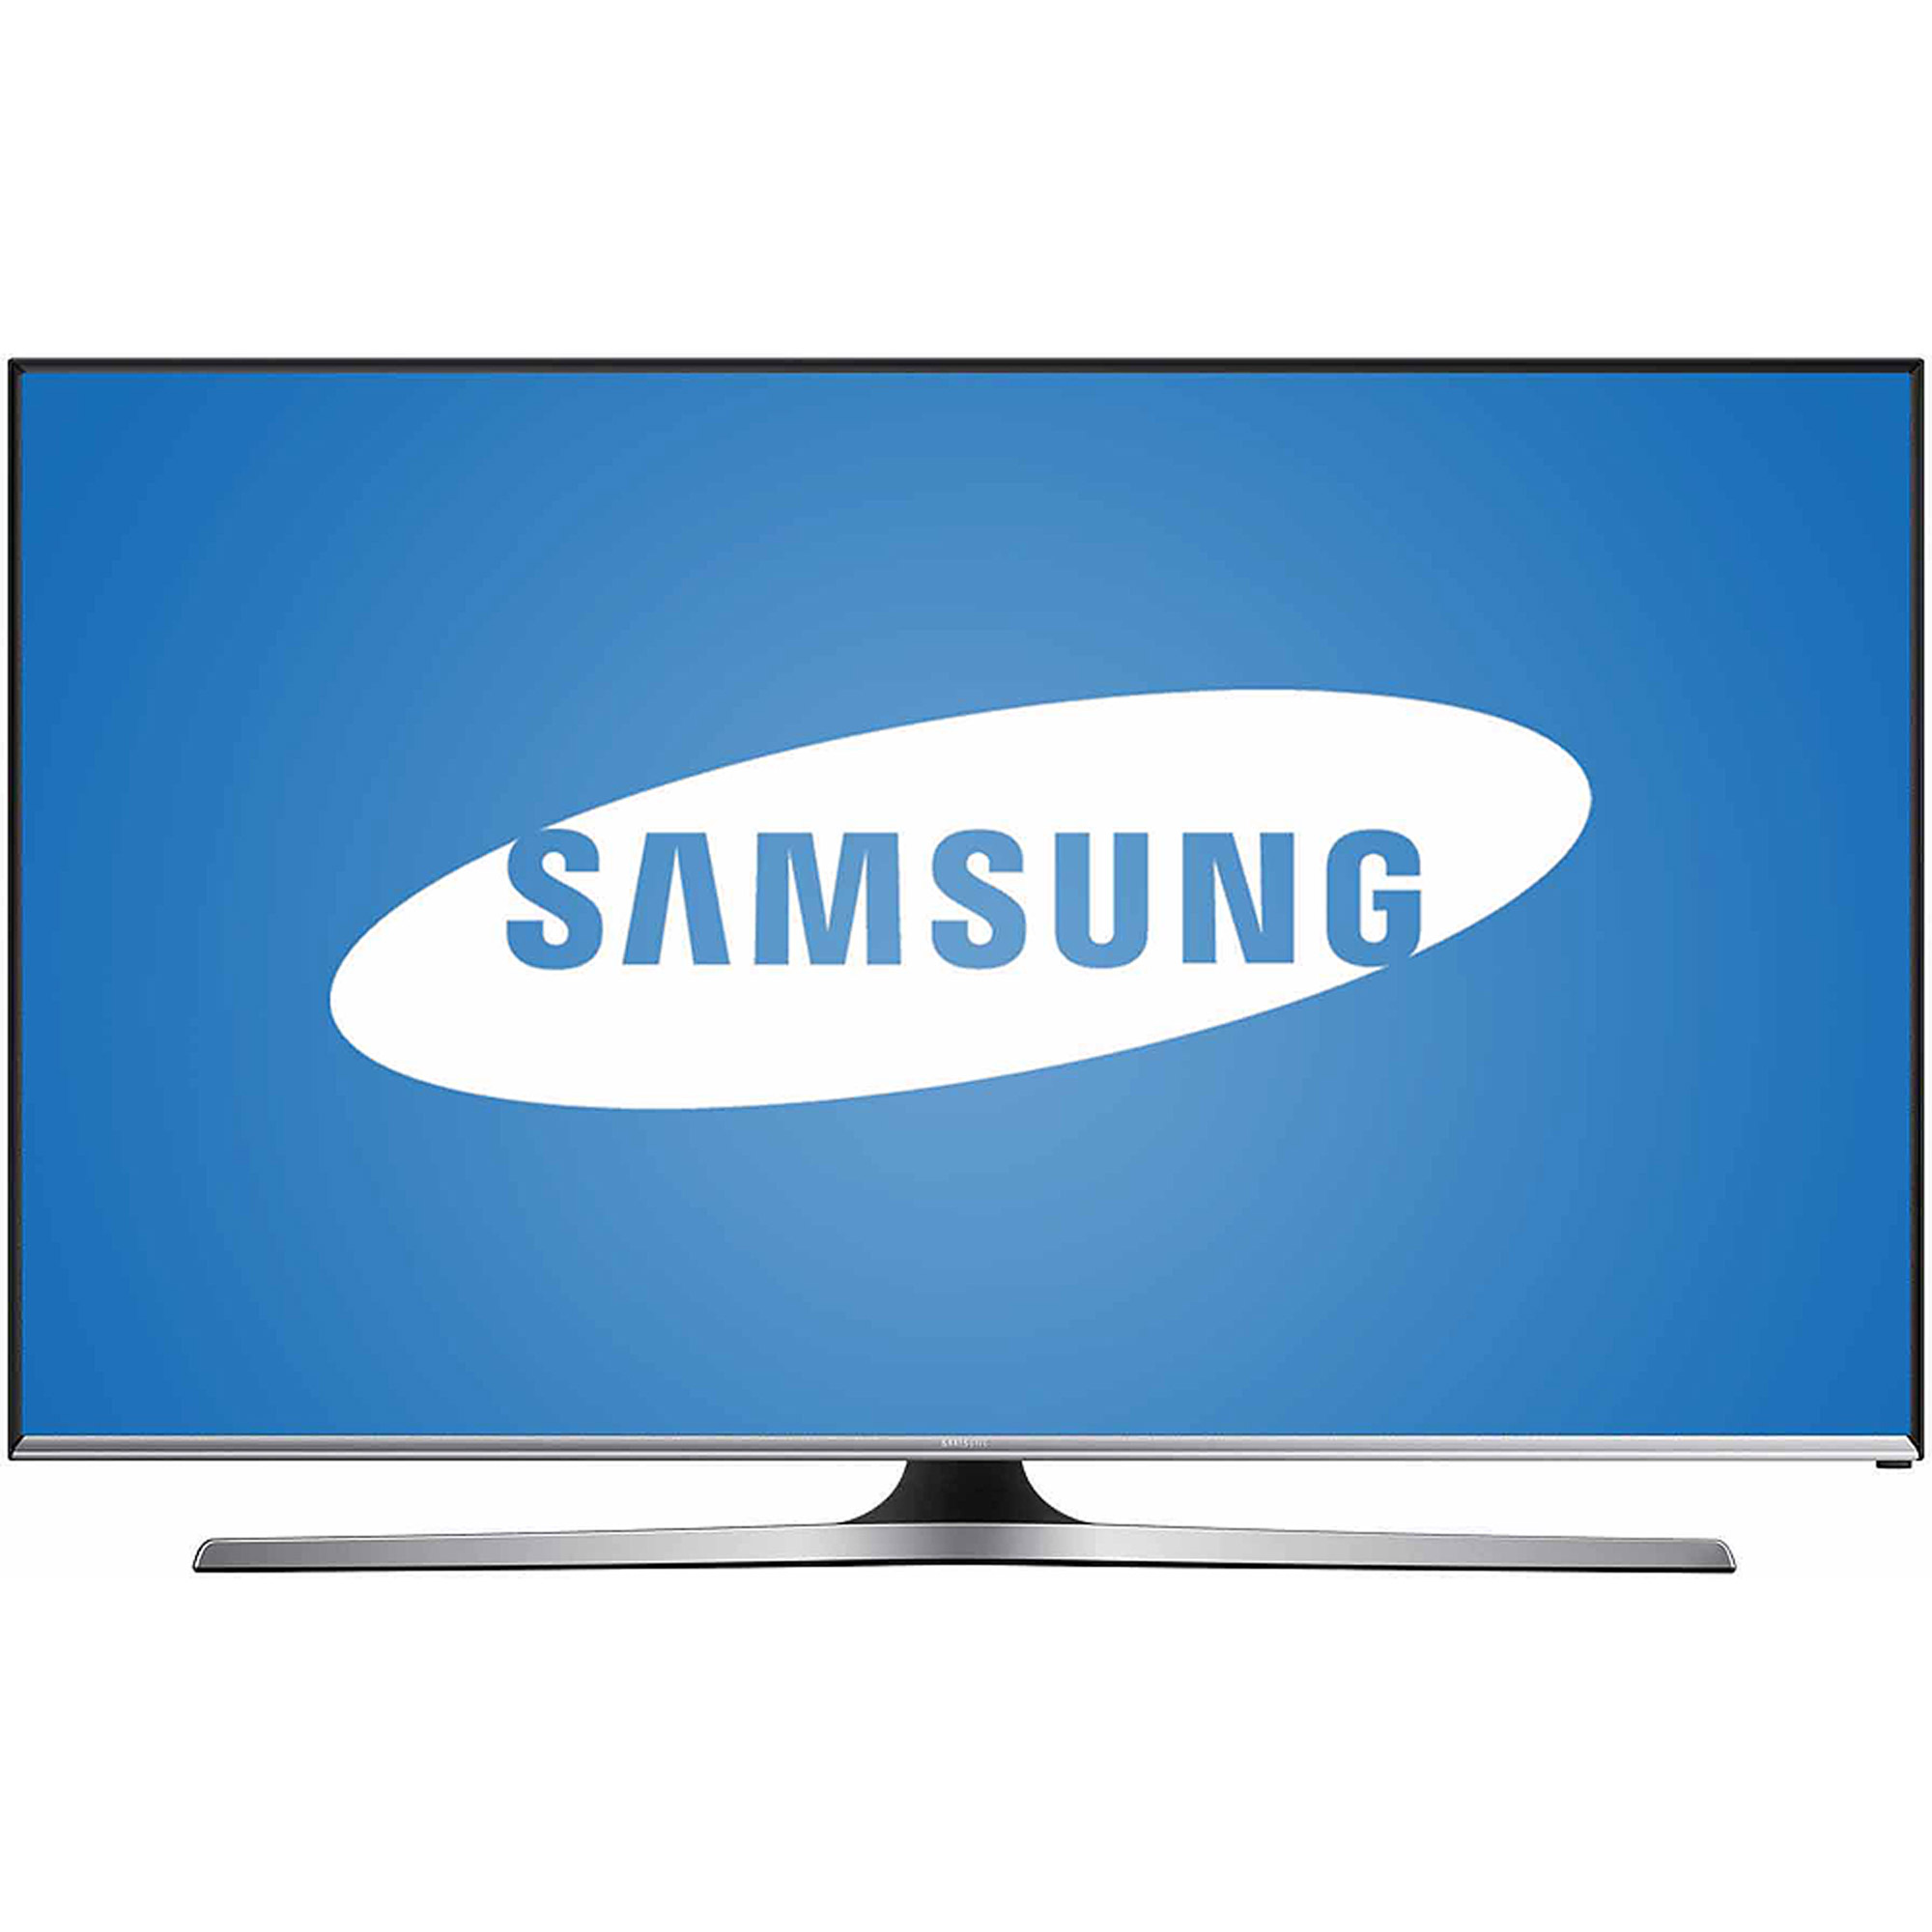 "SAMSUNG 50"" 5500 Series - Full HD Smart LED TV - 1080p, 120MR (Model#: UN50J5500)"